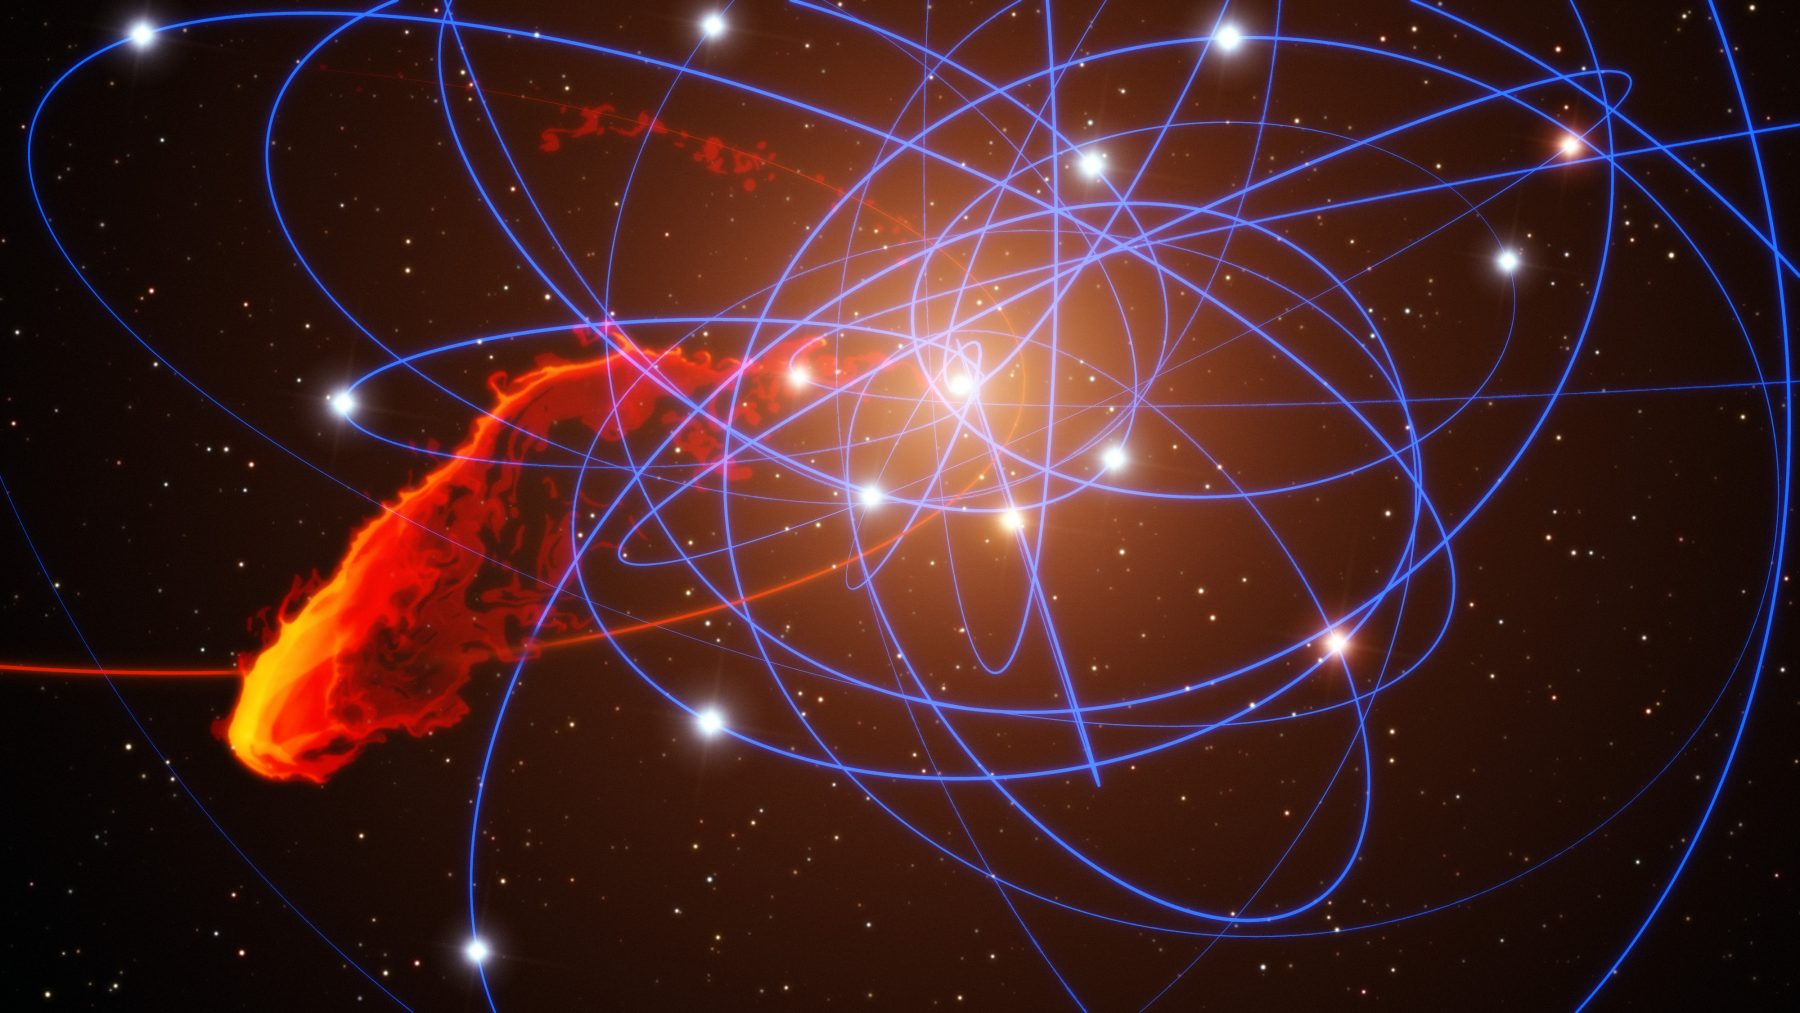 Artist's impression of a gas cloud after a close approach to the black hole at the centre of the Milky Way. The star orbiting the black hole are shown, along with blue lines that mark their fast, tight orbits